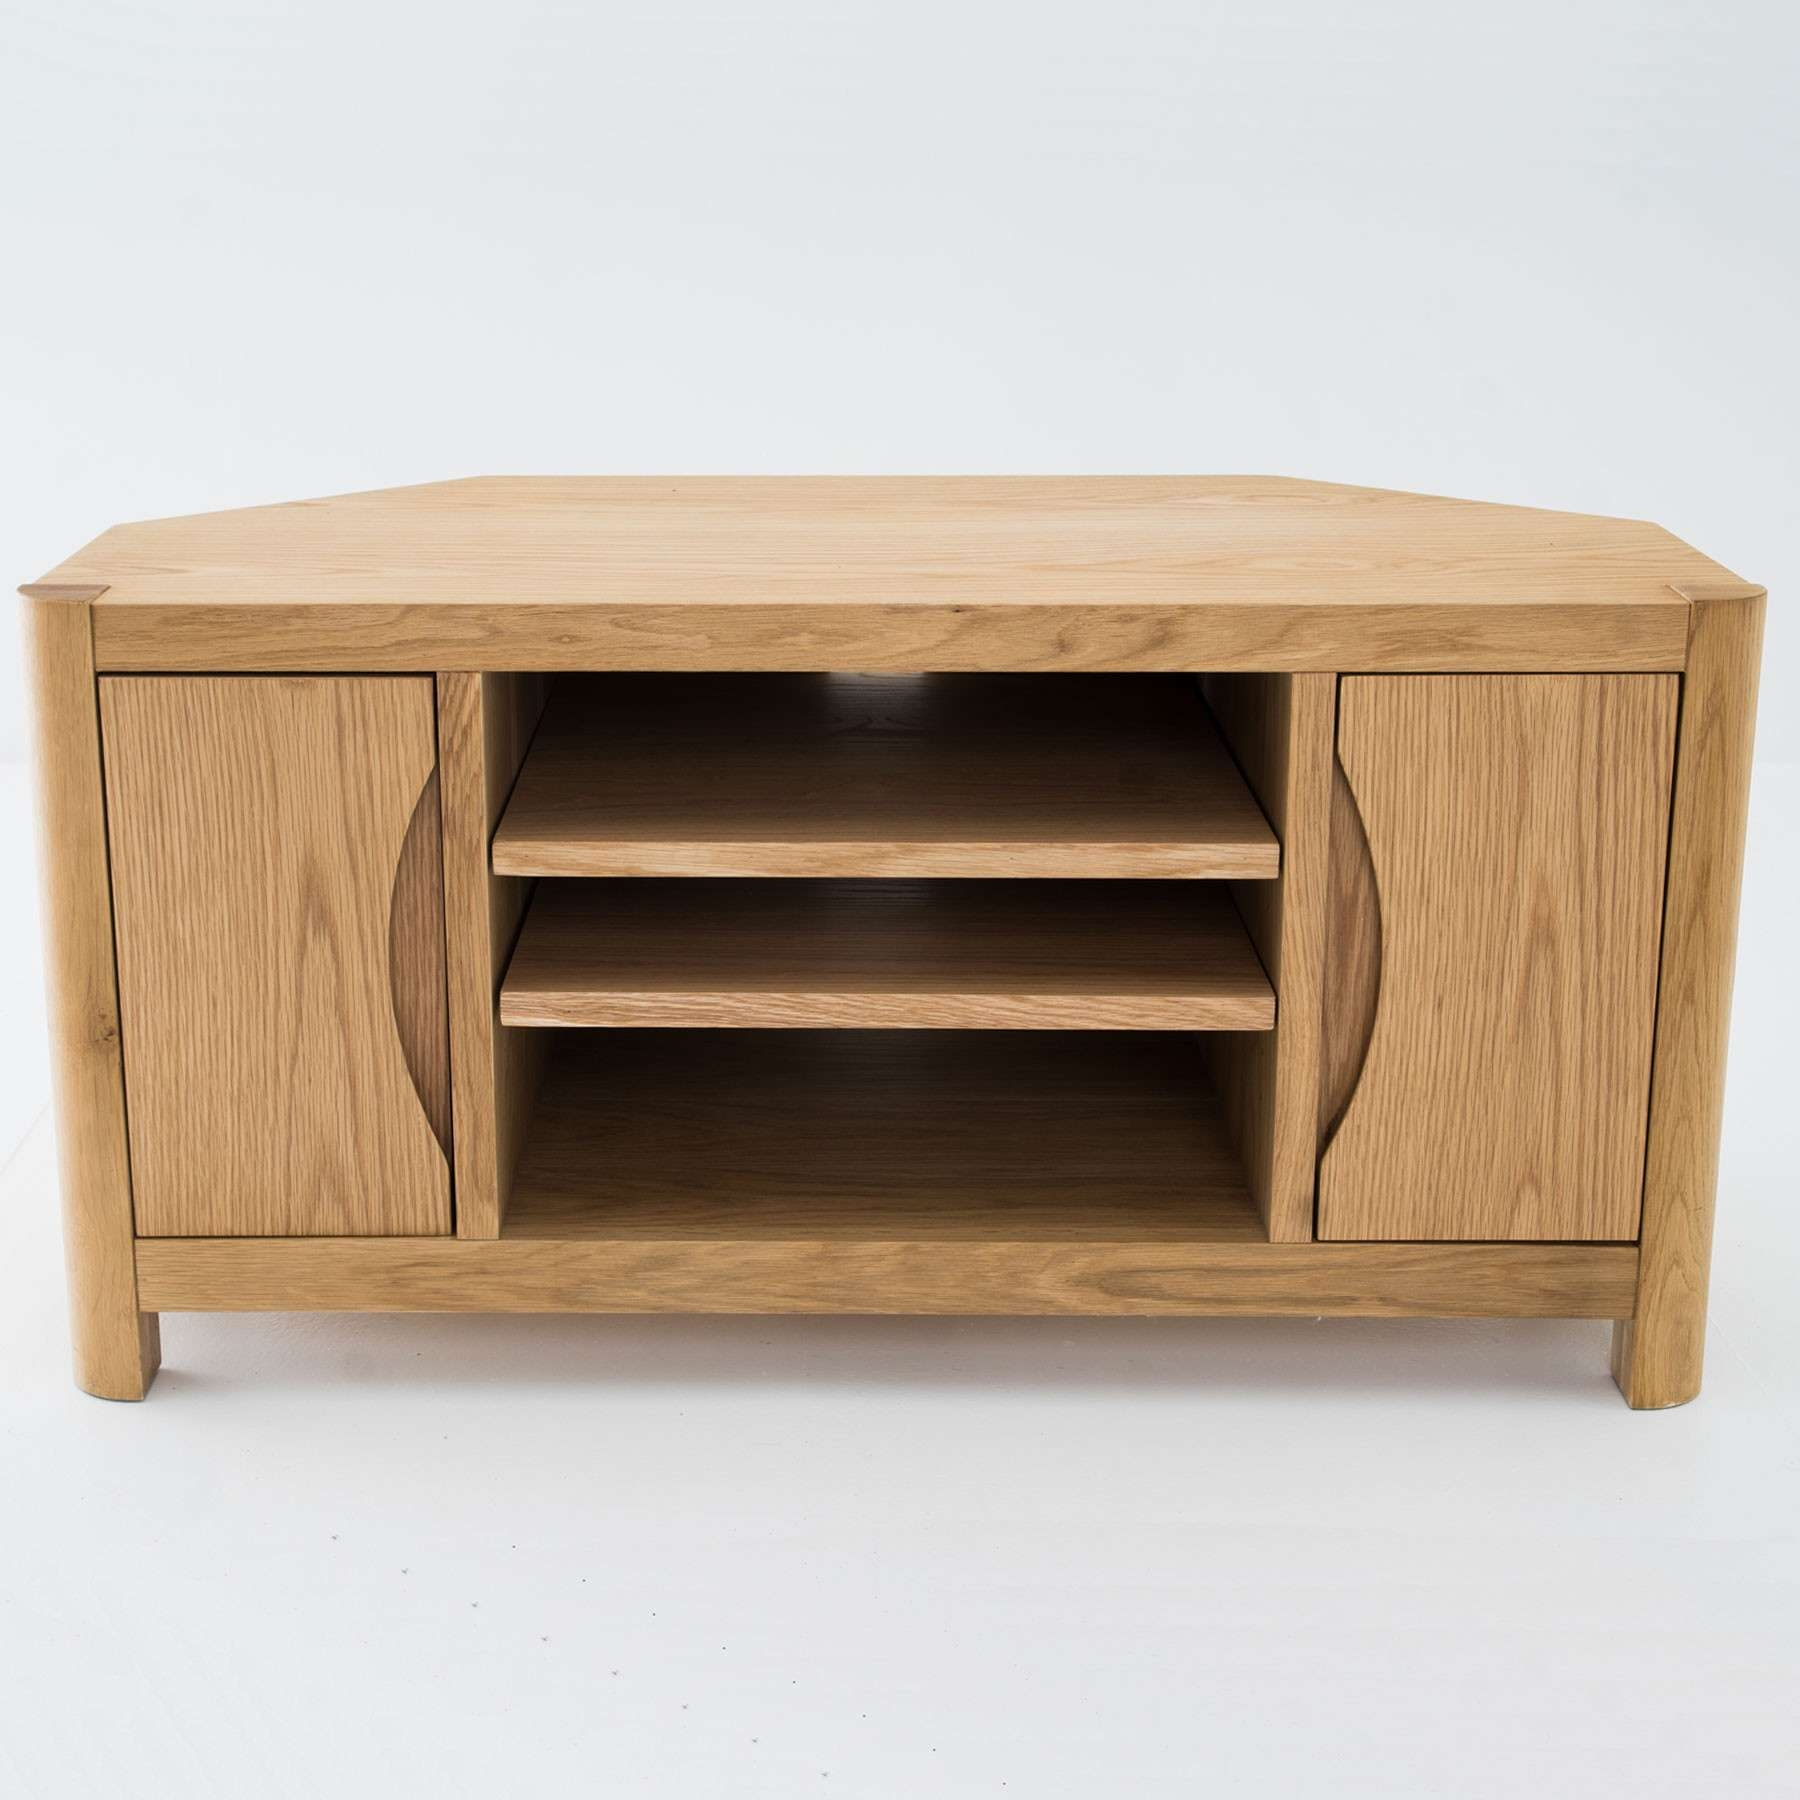 "Oslo Light Oak Corner Tv Stand For Up To 44"" Tvs Pertaining To Light Oak Corner Tv Cabinets (View 11 of 20)"